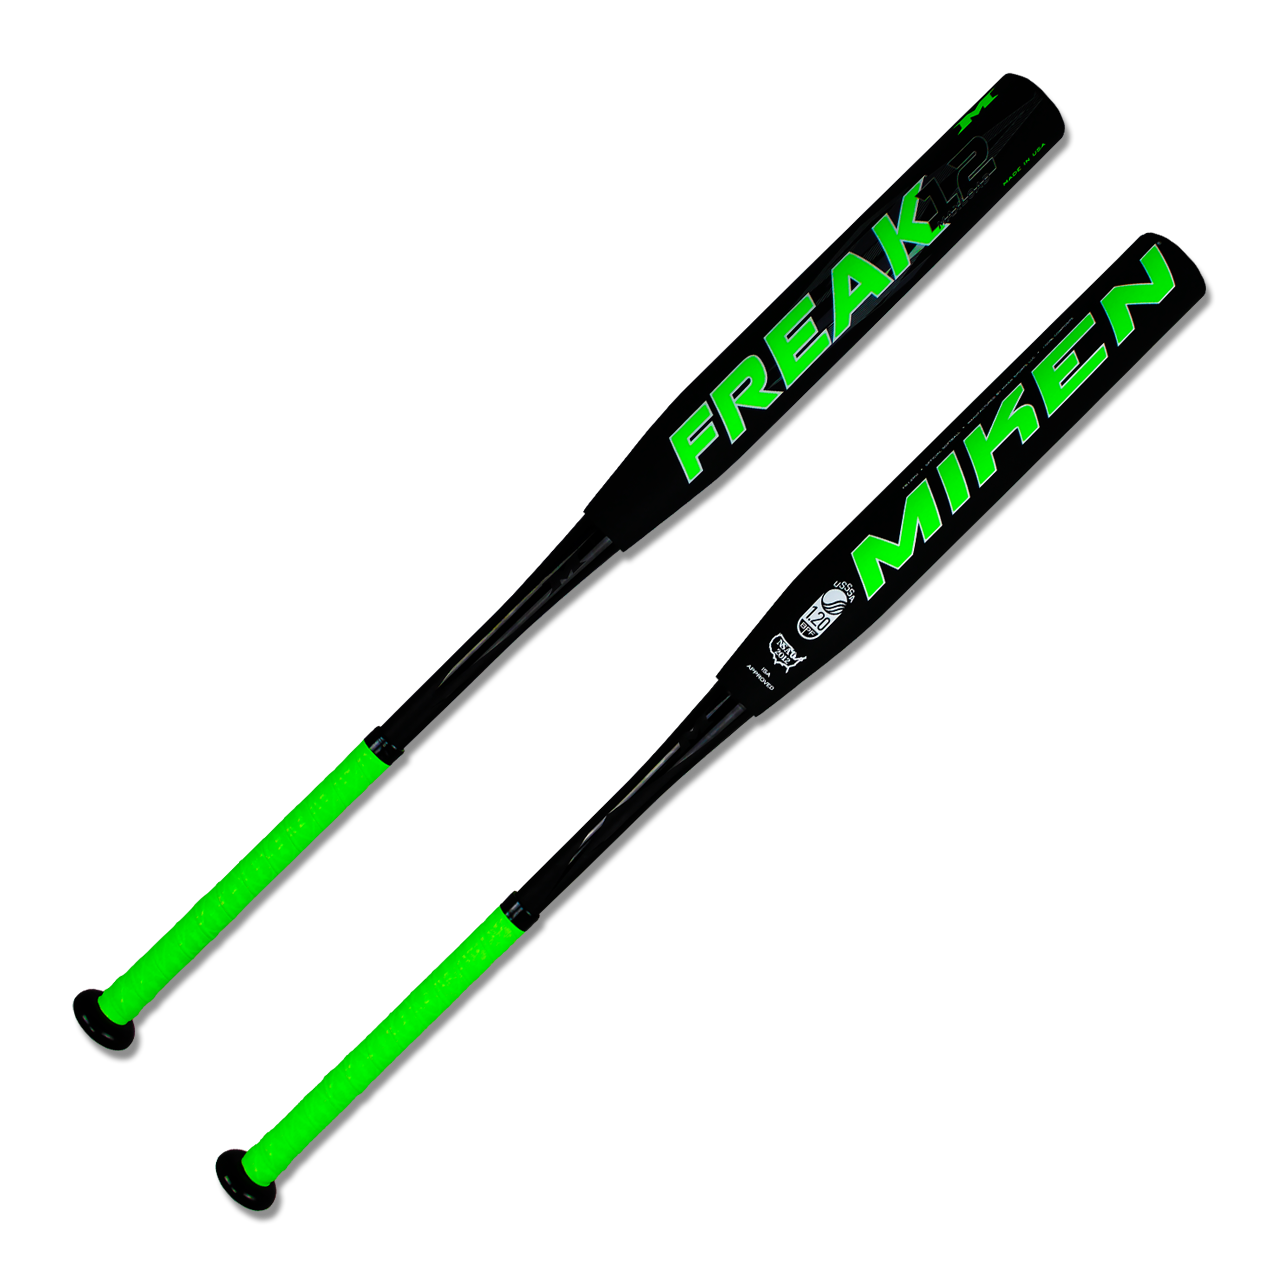 miken-freak-maxload-12-slow-pitch-softball-bat-34-inch-28-oz-fp12mu FB12MU-3-34-inch-28-oz  658925031892 Triple Matrix increases the exclusive aerospace grade material volume by 5%